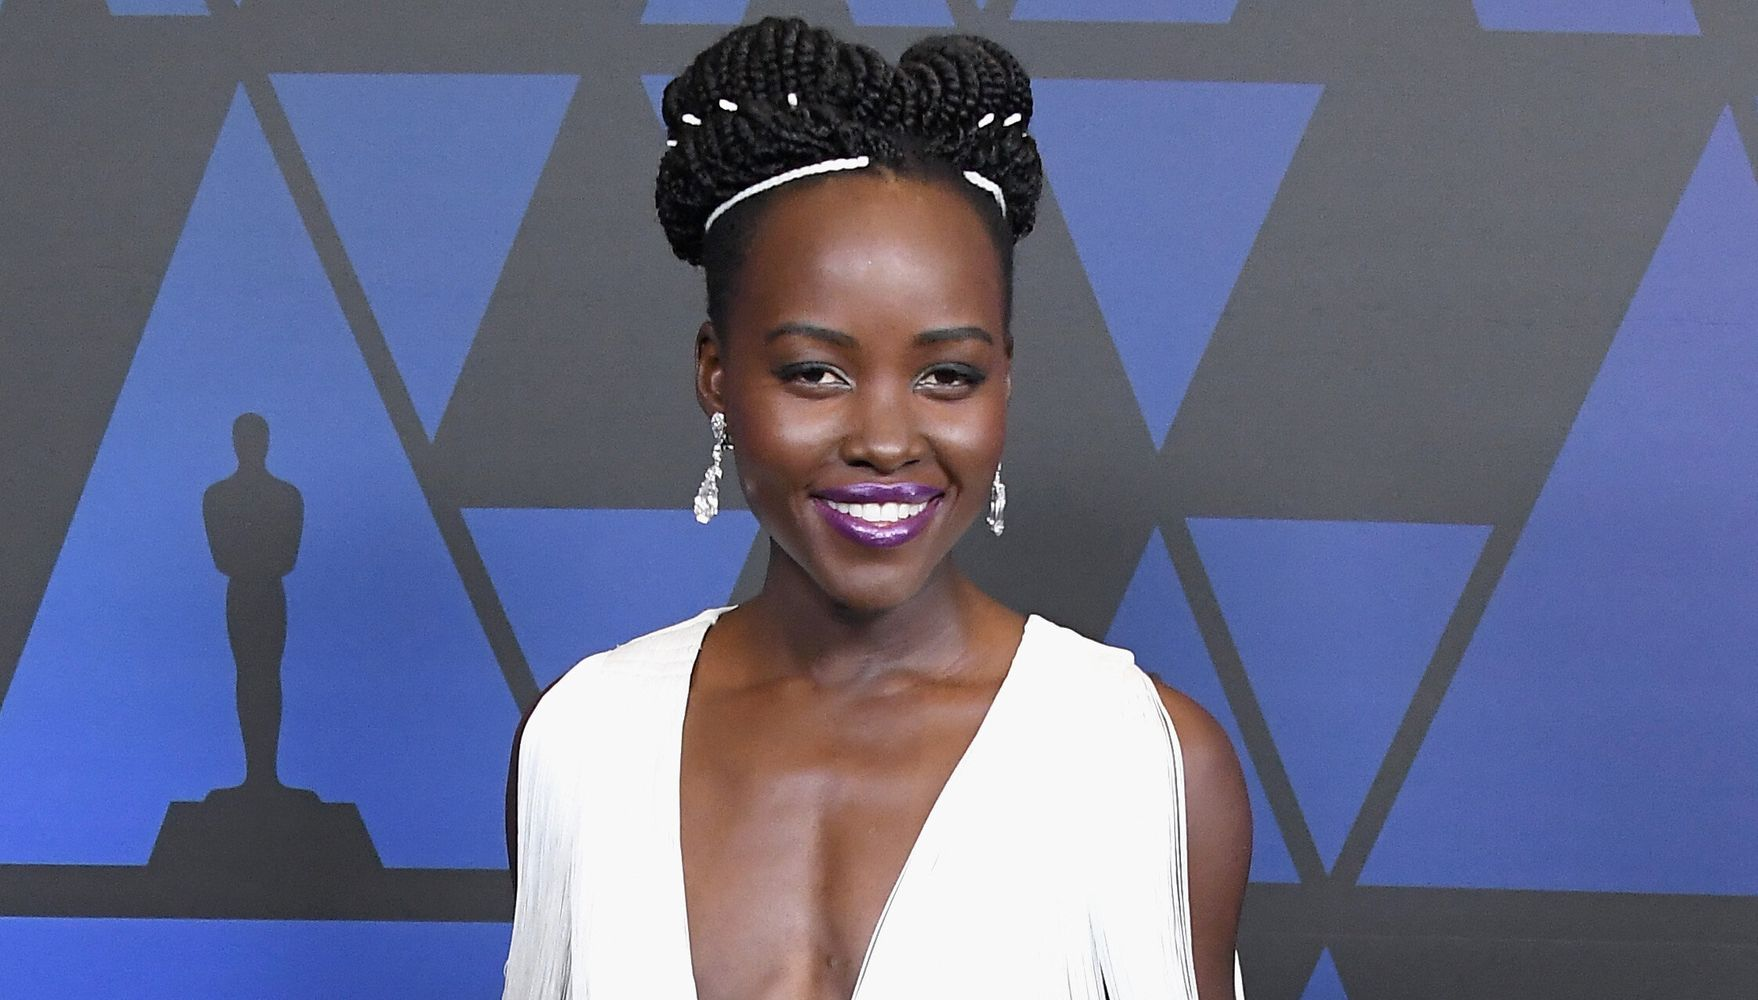 Westlake Legal Group 5d94d5f42200003b02dc5c3f Lupita Nyong'o: 'Society's Preference For Lighter Skin Is Alive And Well'